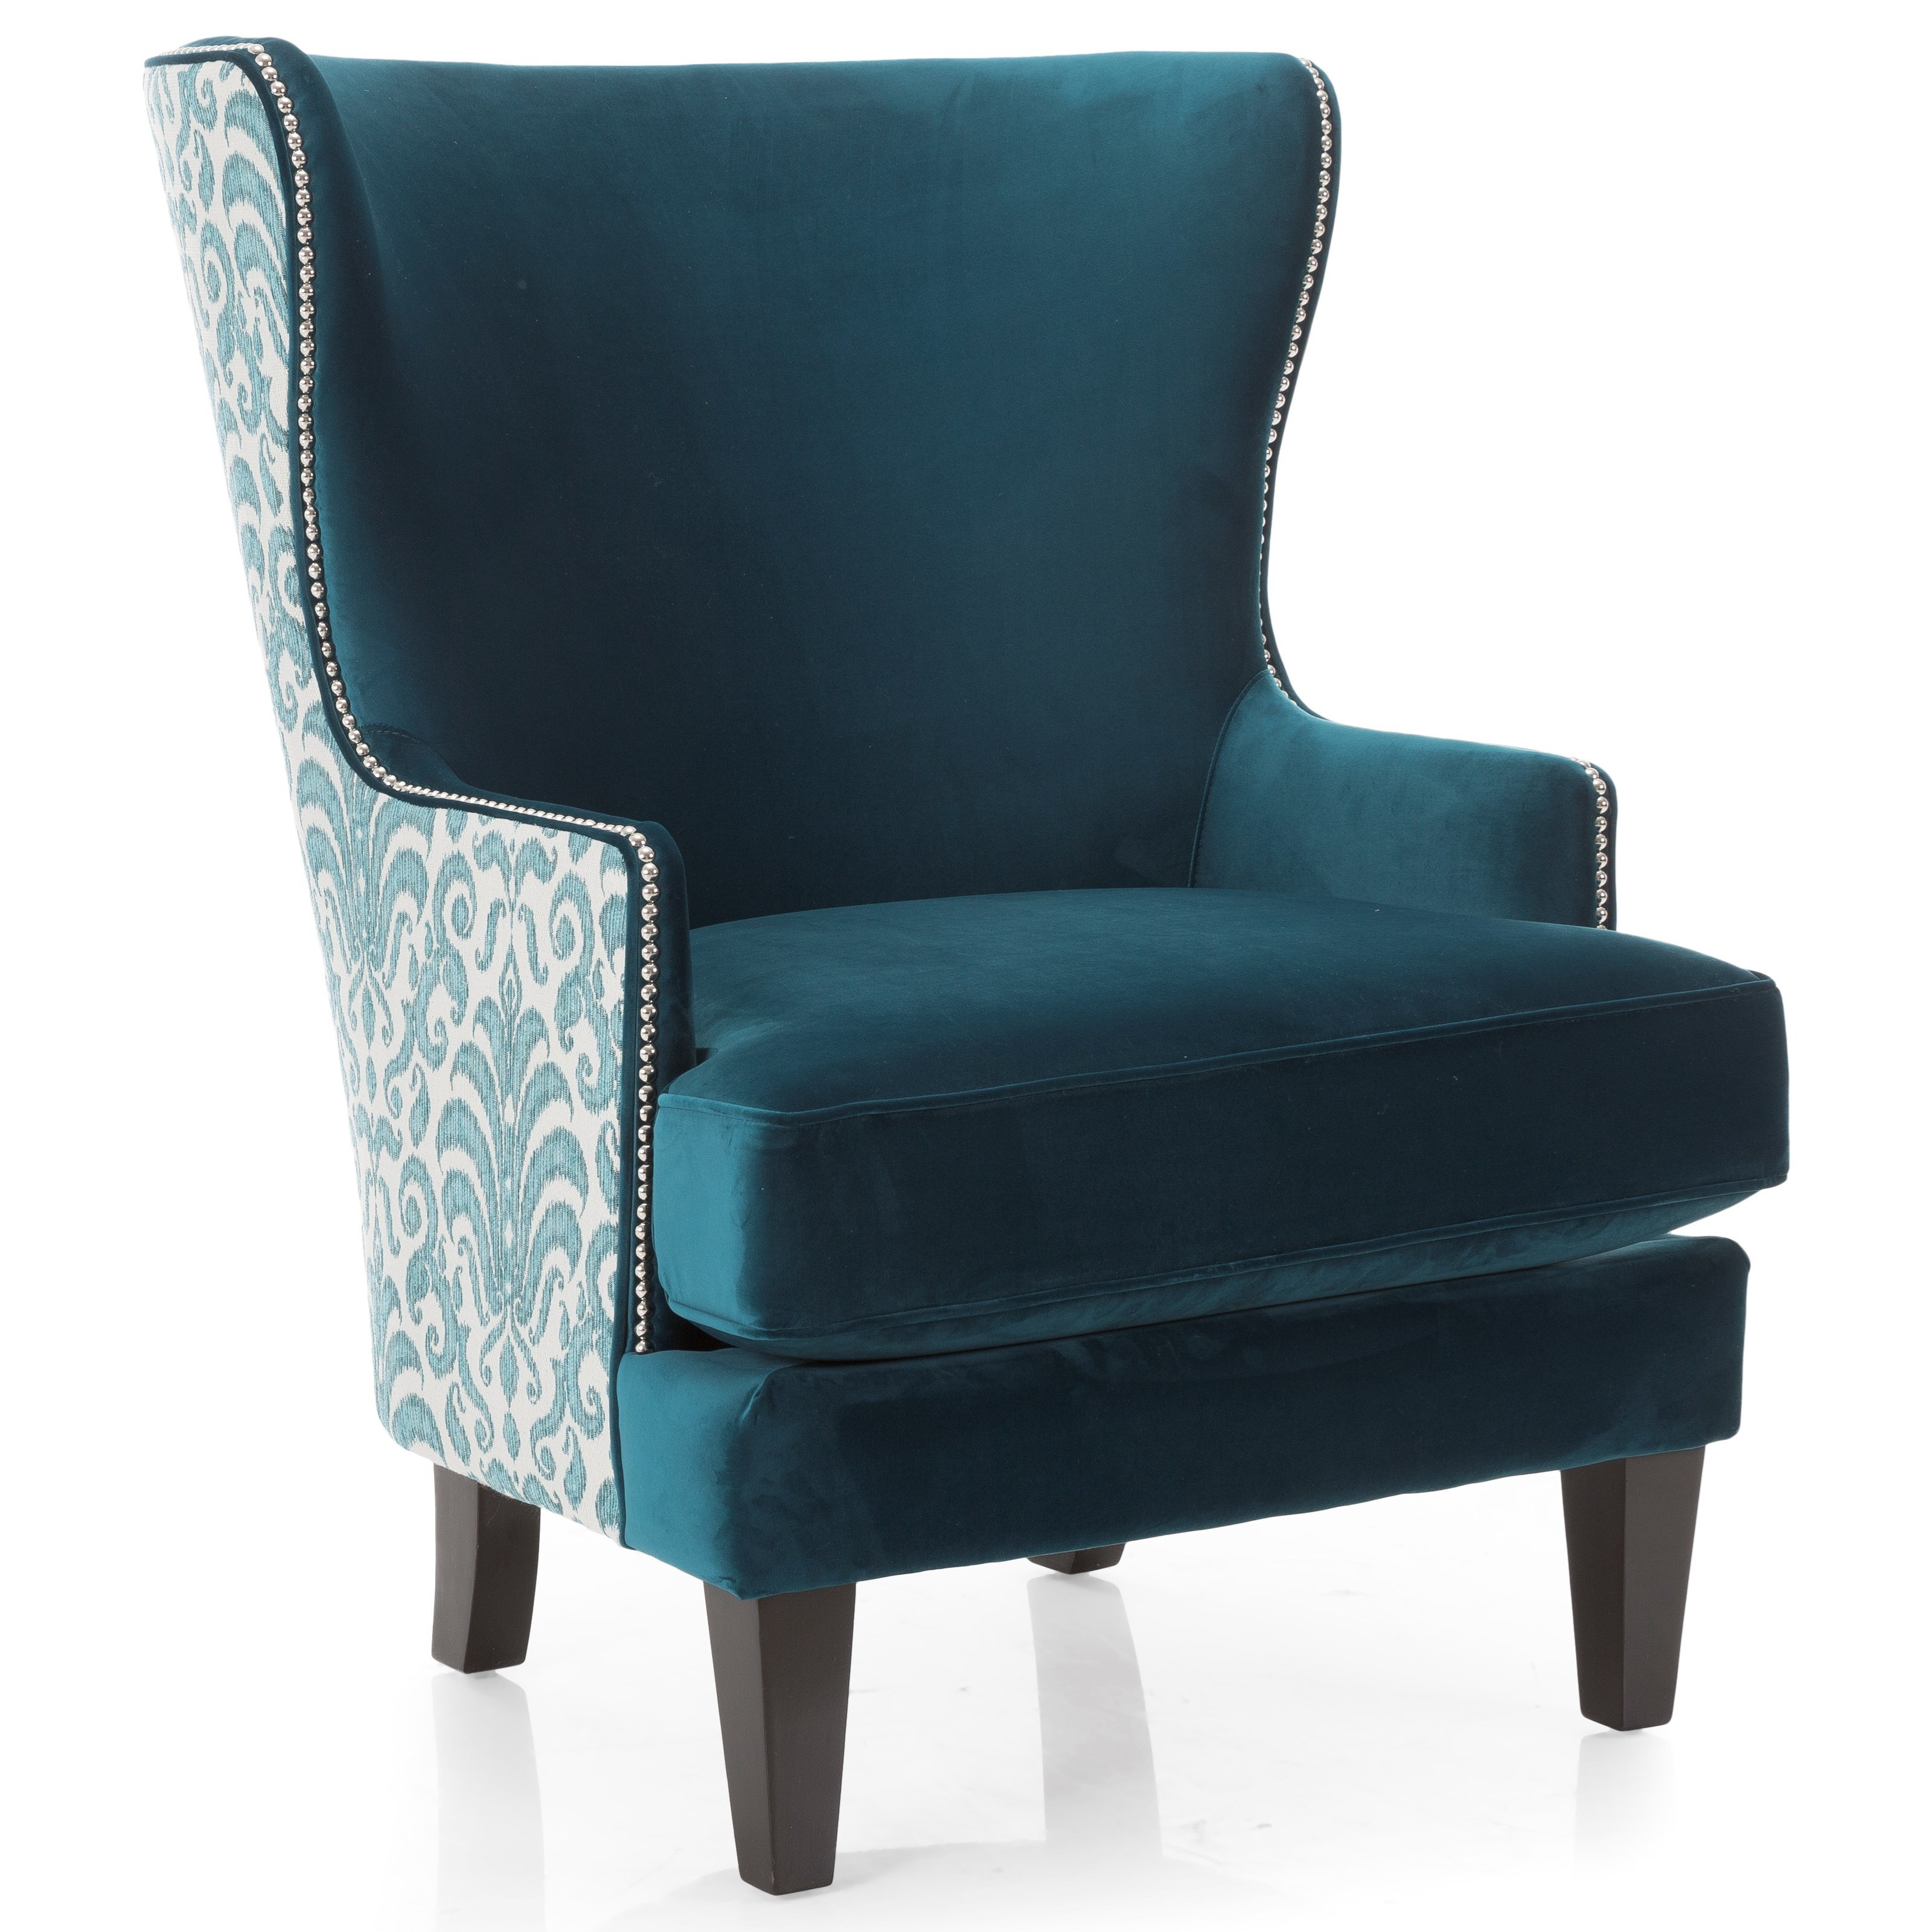 3492 Wing Chair by Decor-Rest at Johnny Janosik